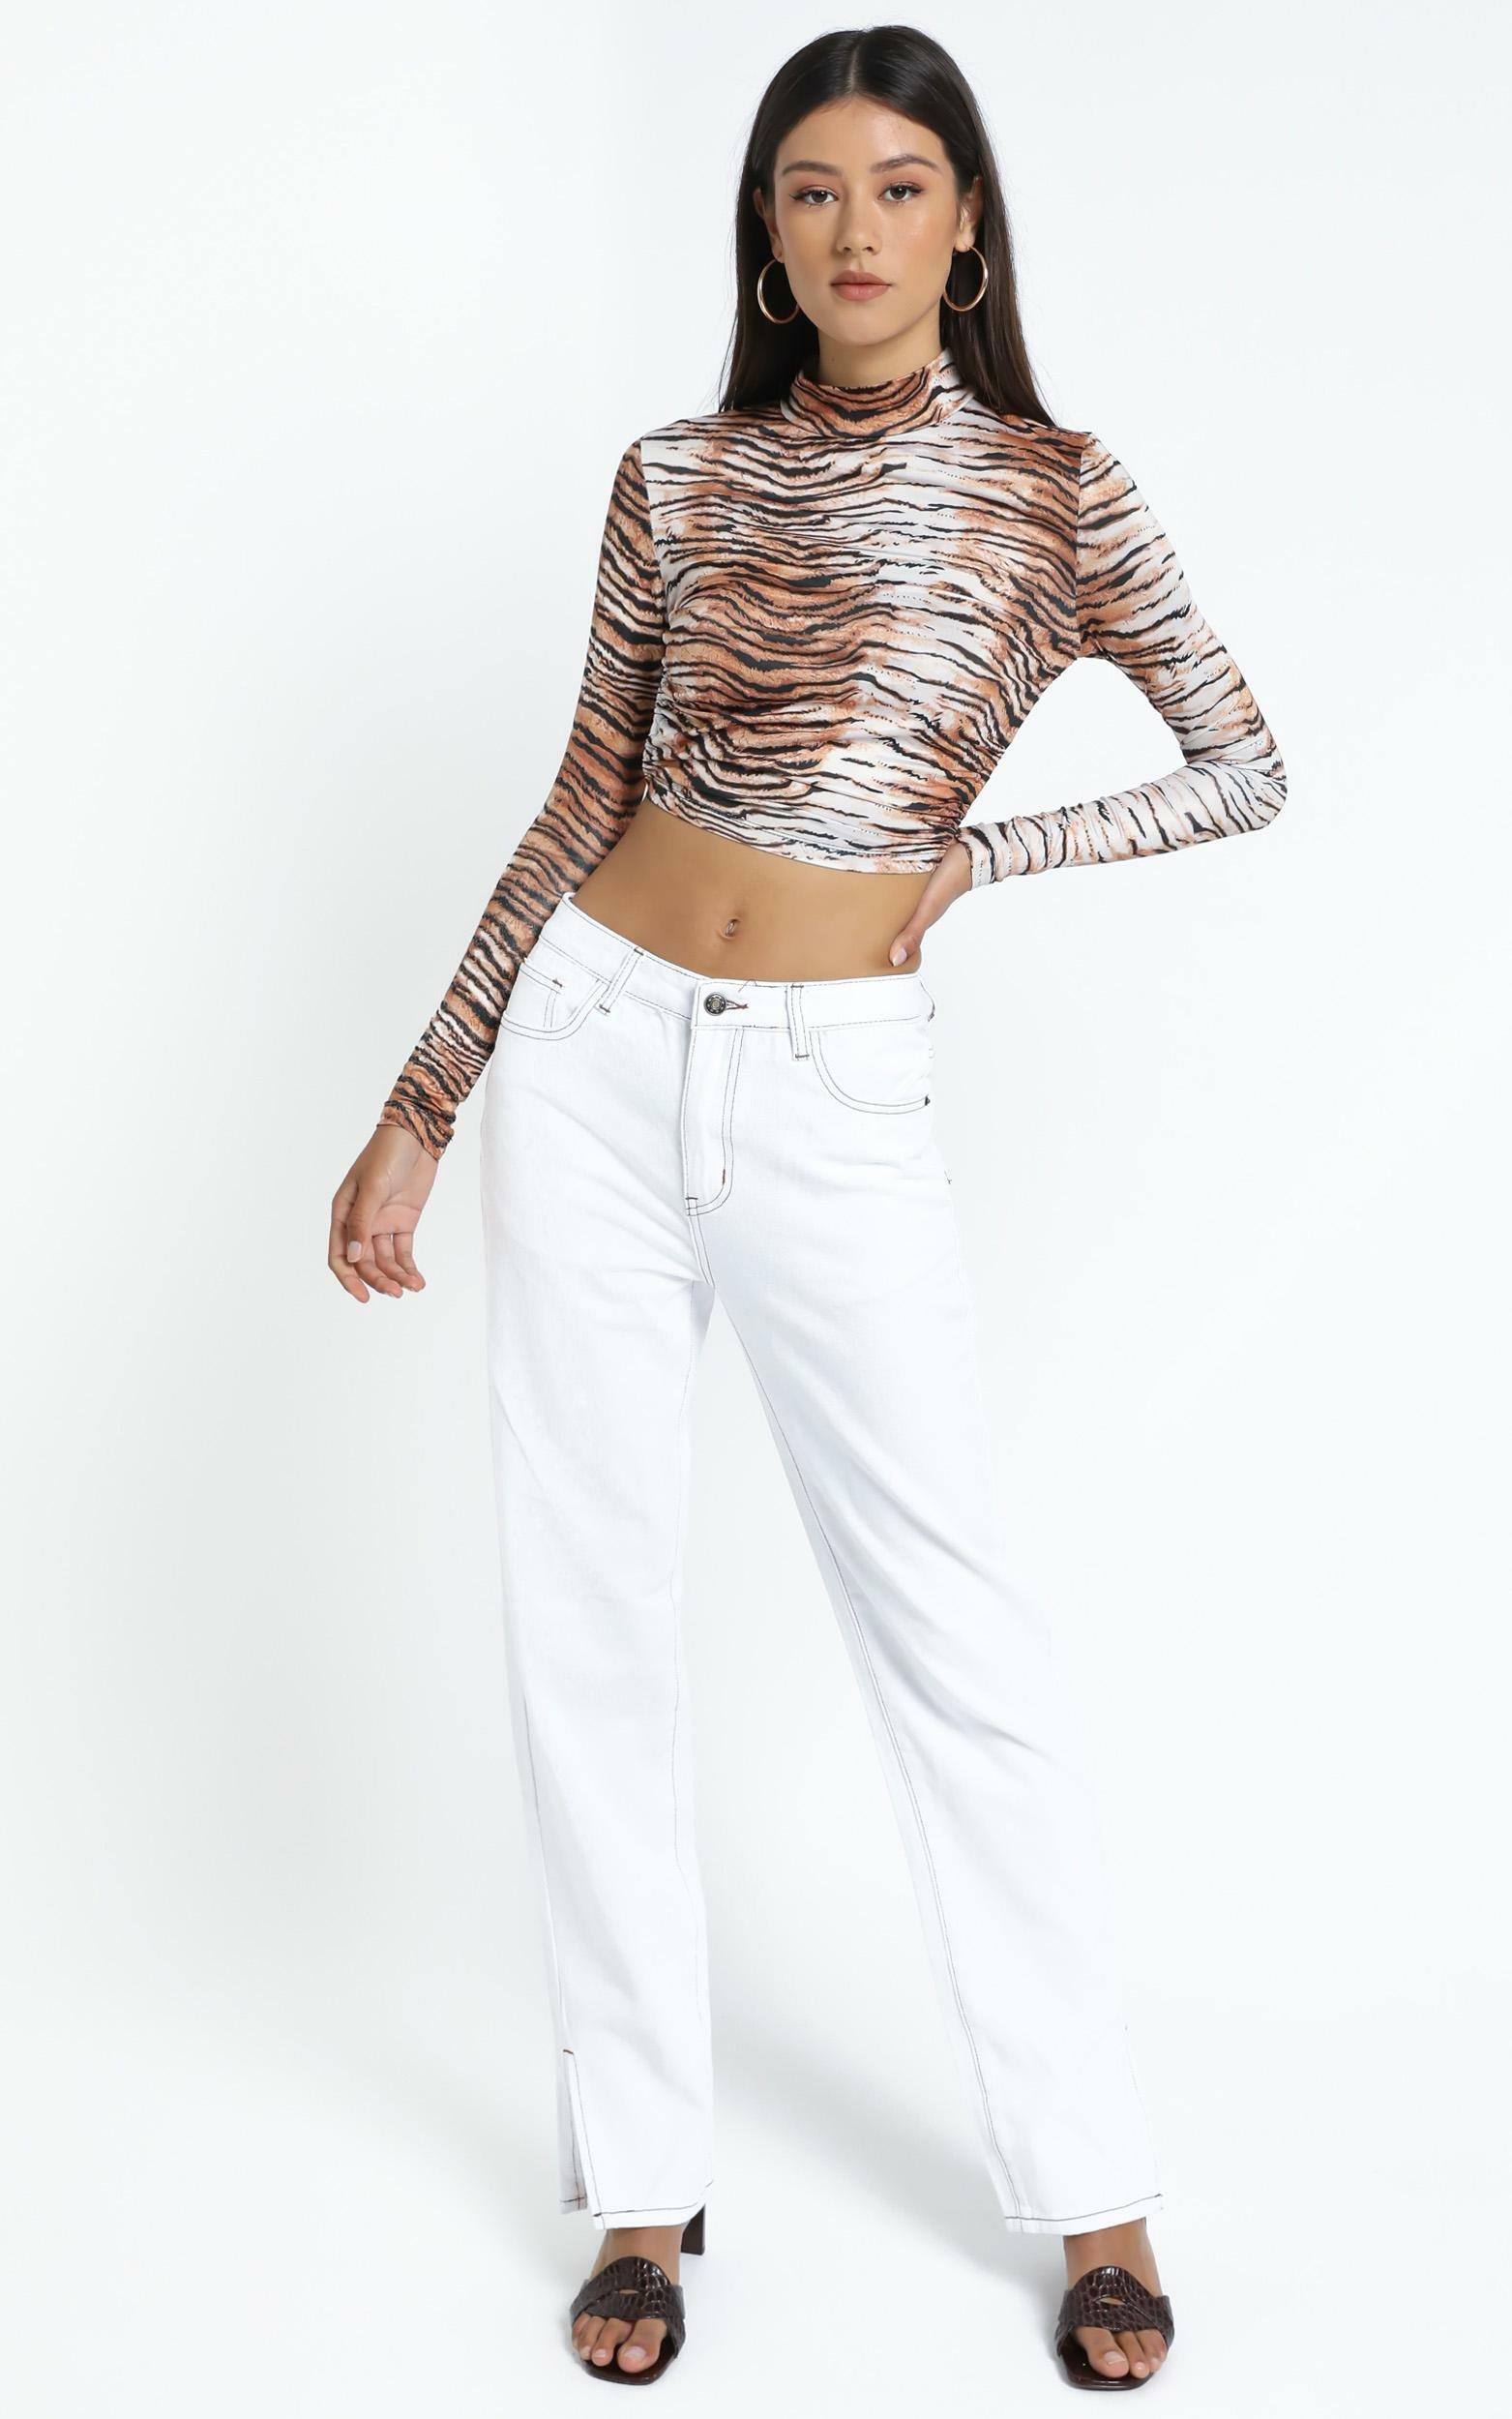 Greenwich Backless Top in Tiger - 12 (L), Brown, hi-res image number null